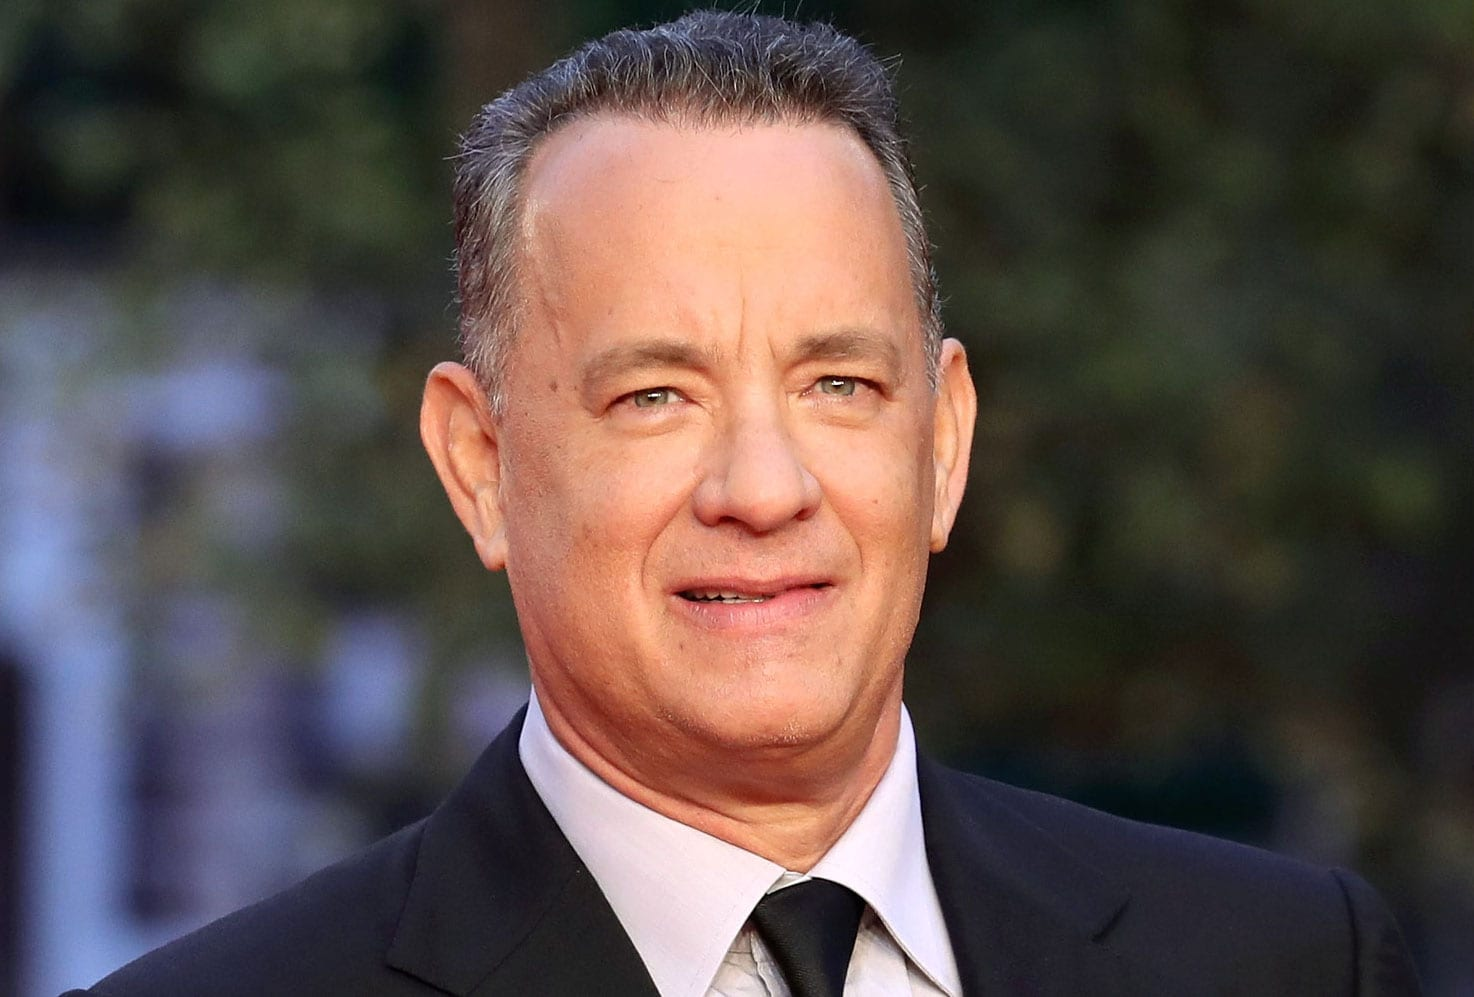 A headshot of actor Tom Hanks